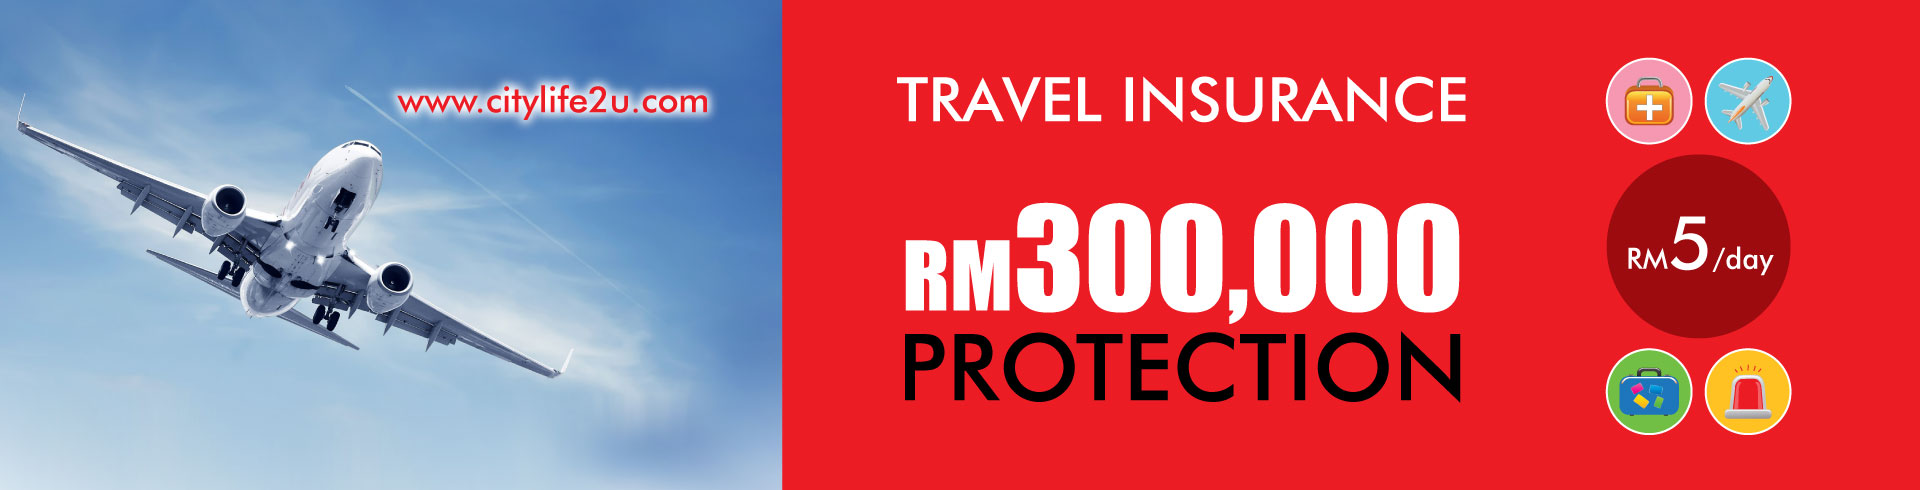 Travel Insurance Daily Protection